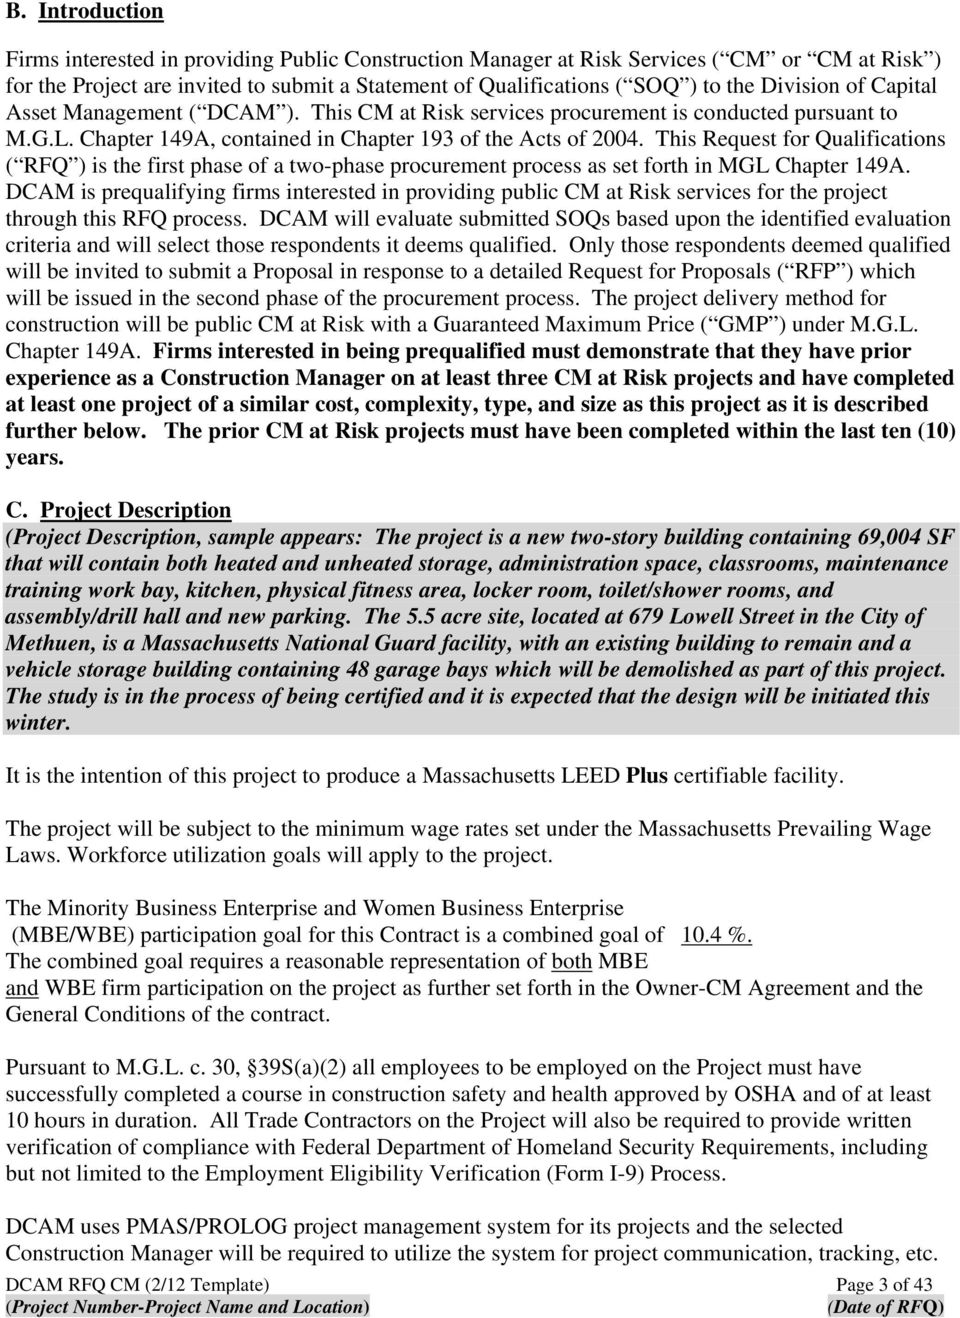 This Request for Qualifications ( RFQ ) is the first phase of a two-phase procurement process as set forth in MGL Chapter 149A.